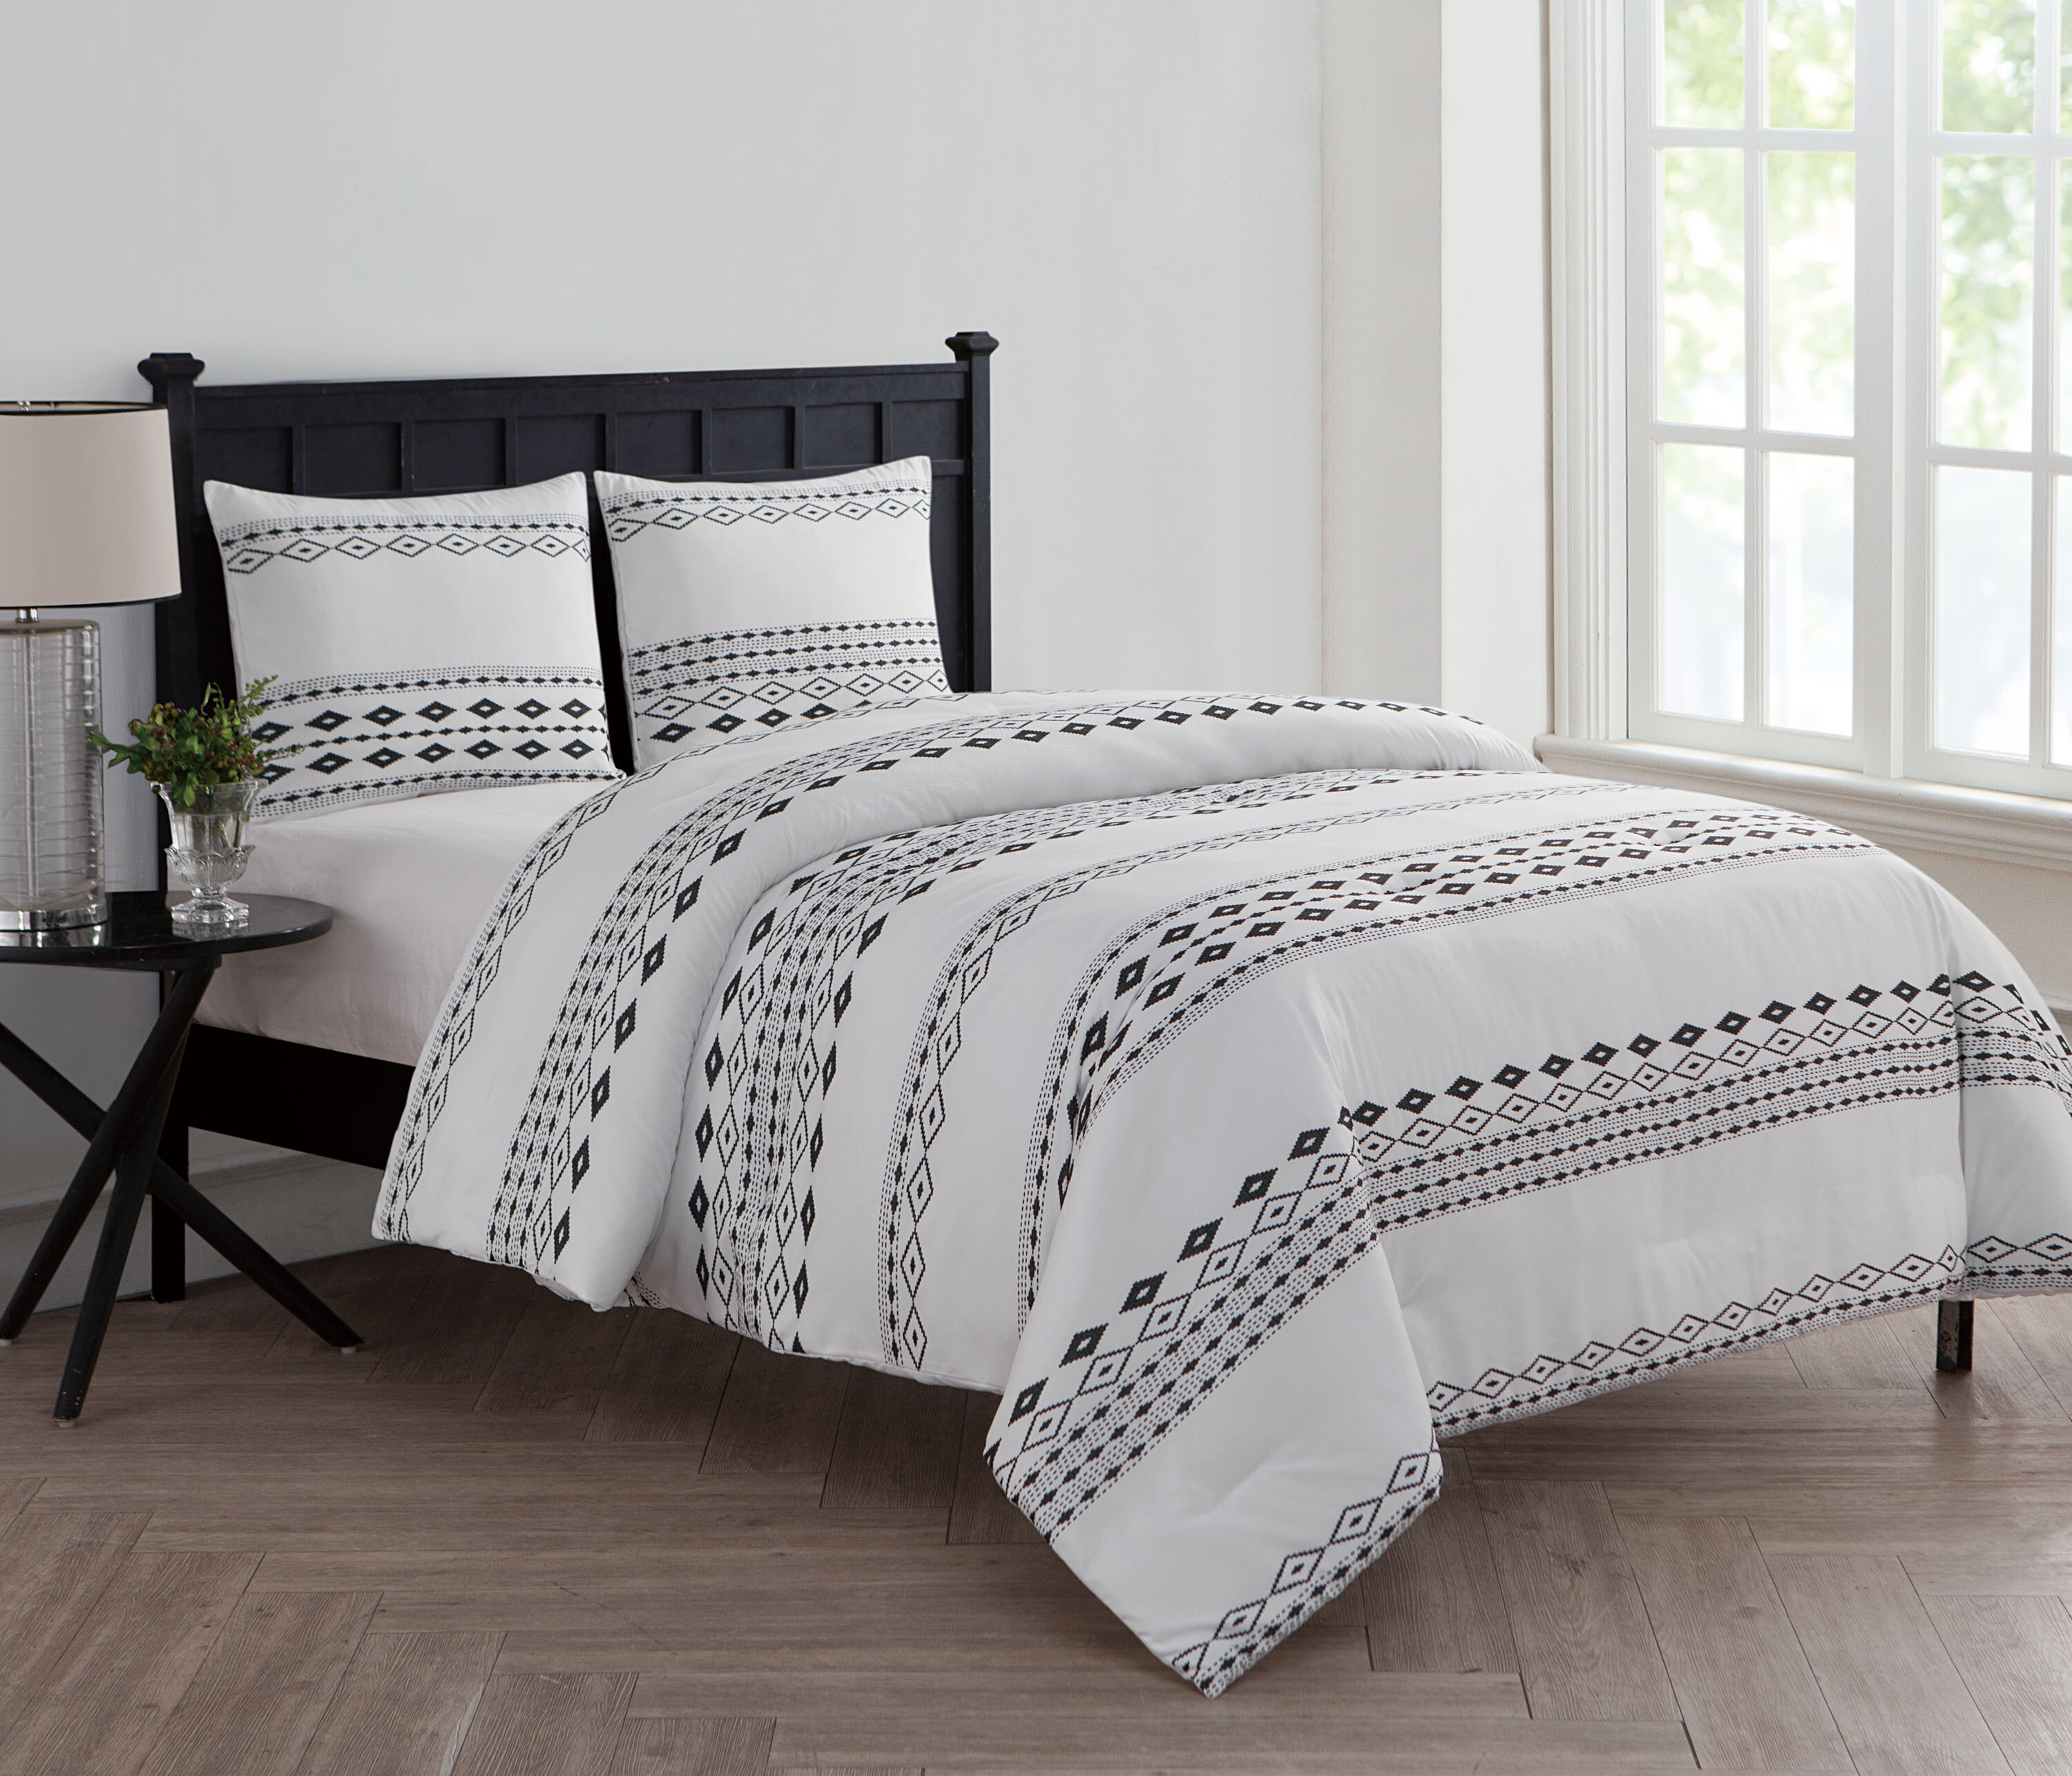 bath sanctuary ralph sets satin queen sheet what scroll duvets king fabric idea covers beyond sham tux cover sequin is barry elegant barbara for clearance comforter poetical diamond duvet grey lauren full bedding bedroom of covering size and euro starburst set